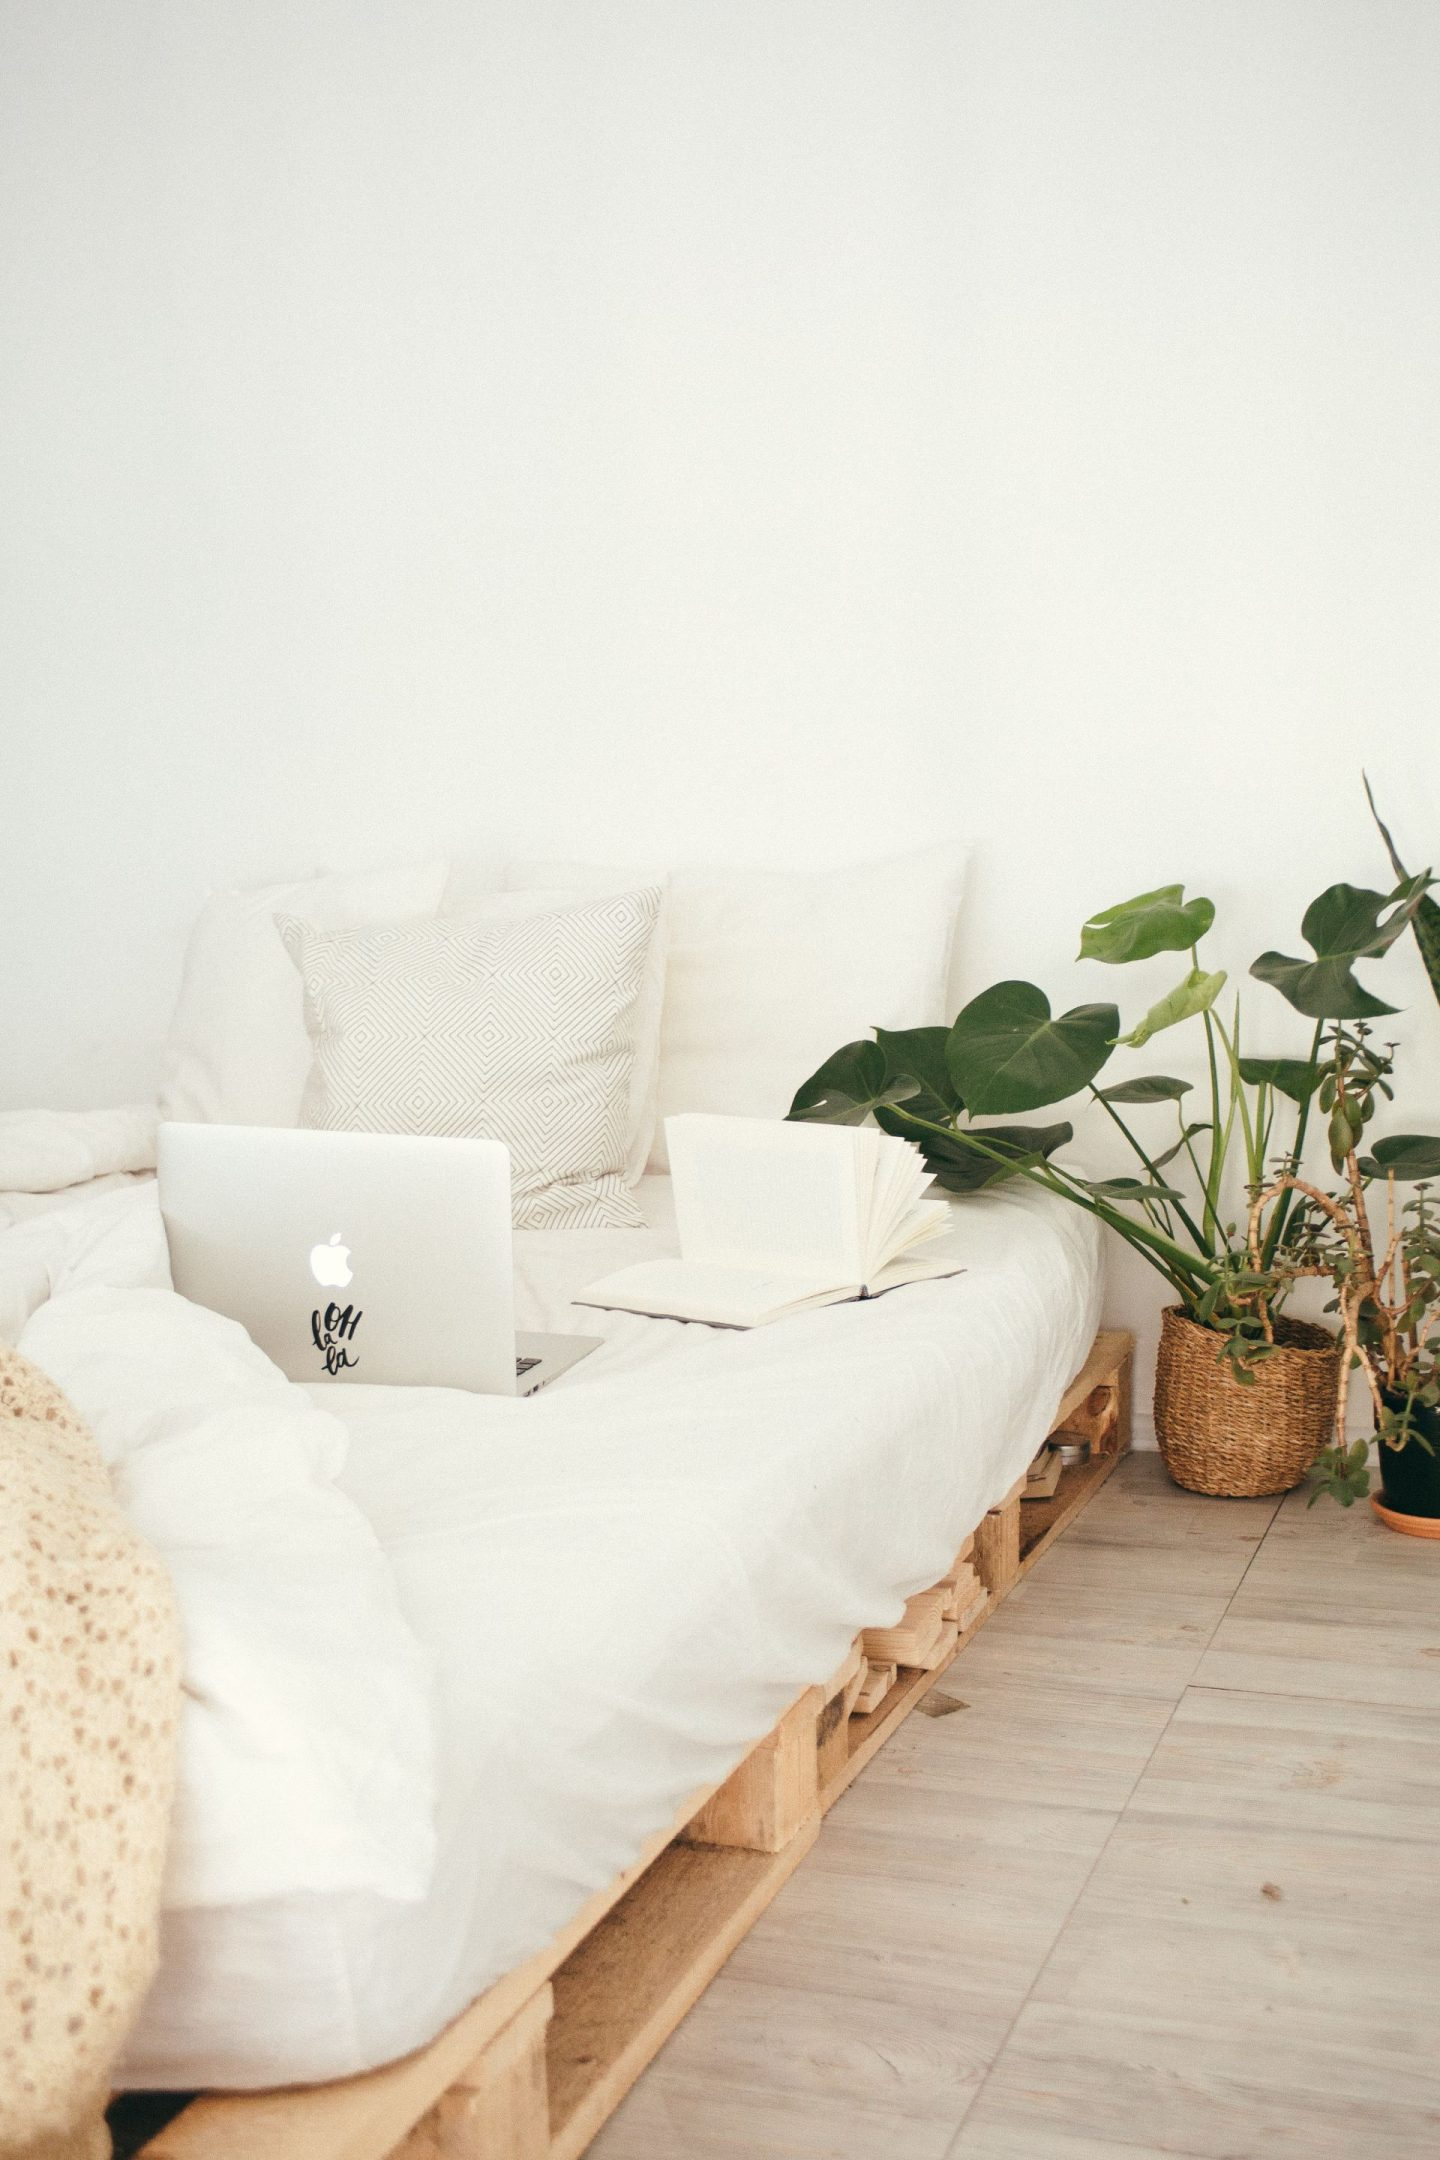 Freelancing Diaries: 5 Lessons I Learnt in my First Year